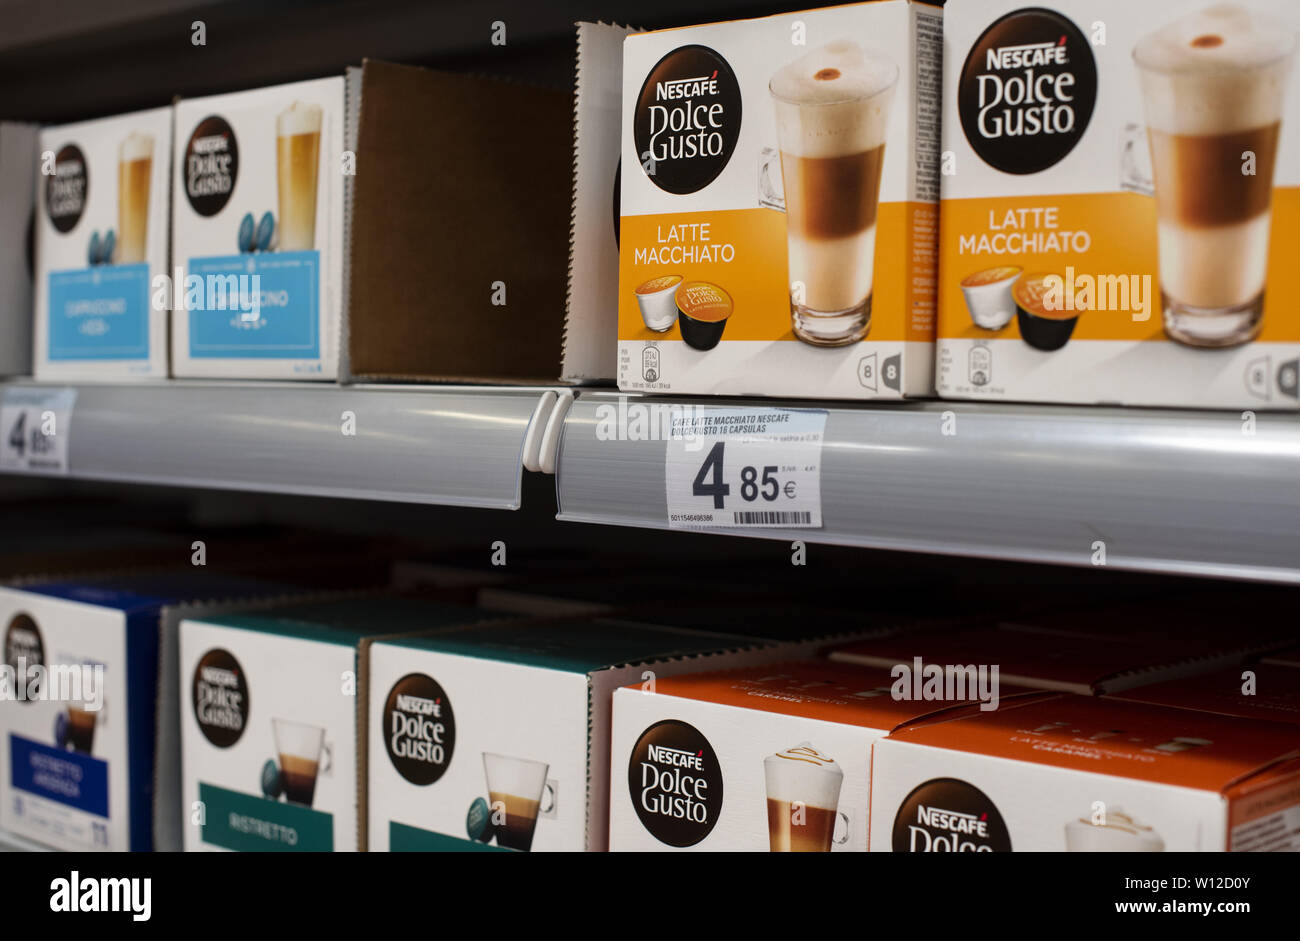 June 6, 2019 - Spain - Swiss capsule machine system by Nestlé brand, Nescafé Dolce Gusto, displayed for sale at the Carrefour supermarket in Spain. (Credit Image: © Budrul Chukrut/SOPA Images via ZUMA Wire) - Stock Image